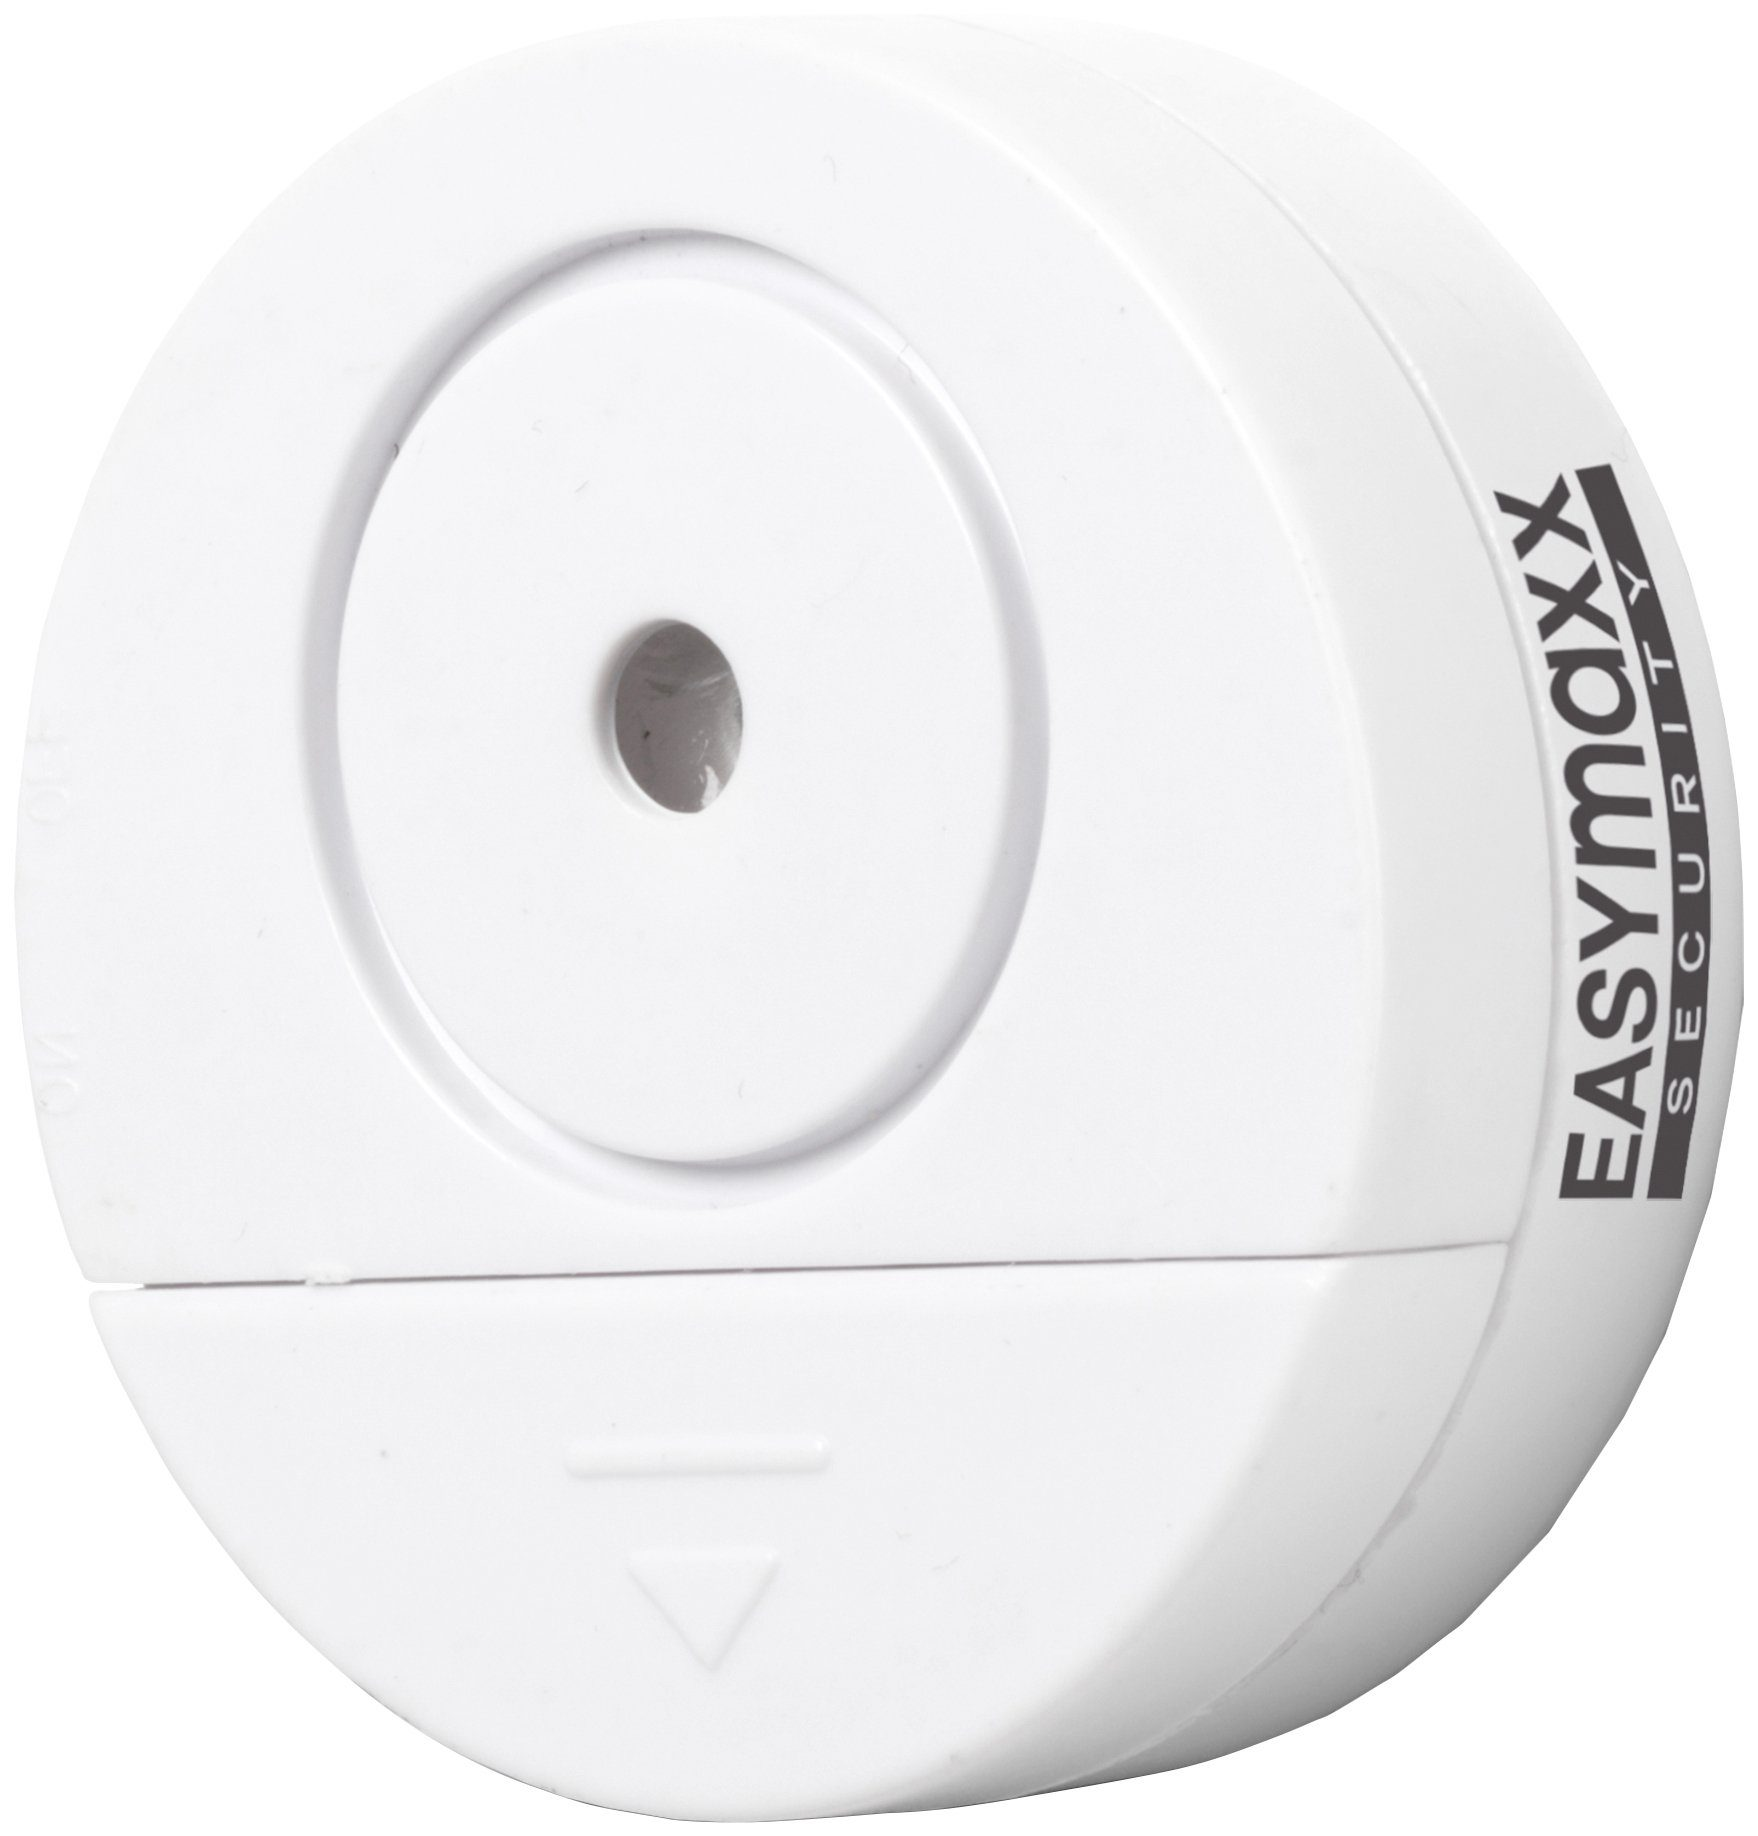 EASYMAXX Glasbruch Alarm »Security«